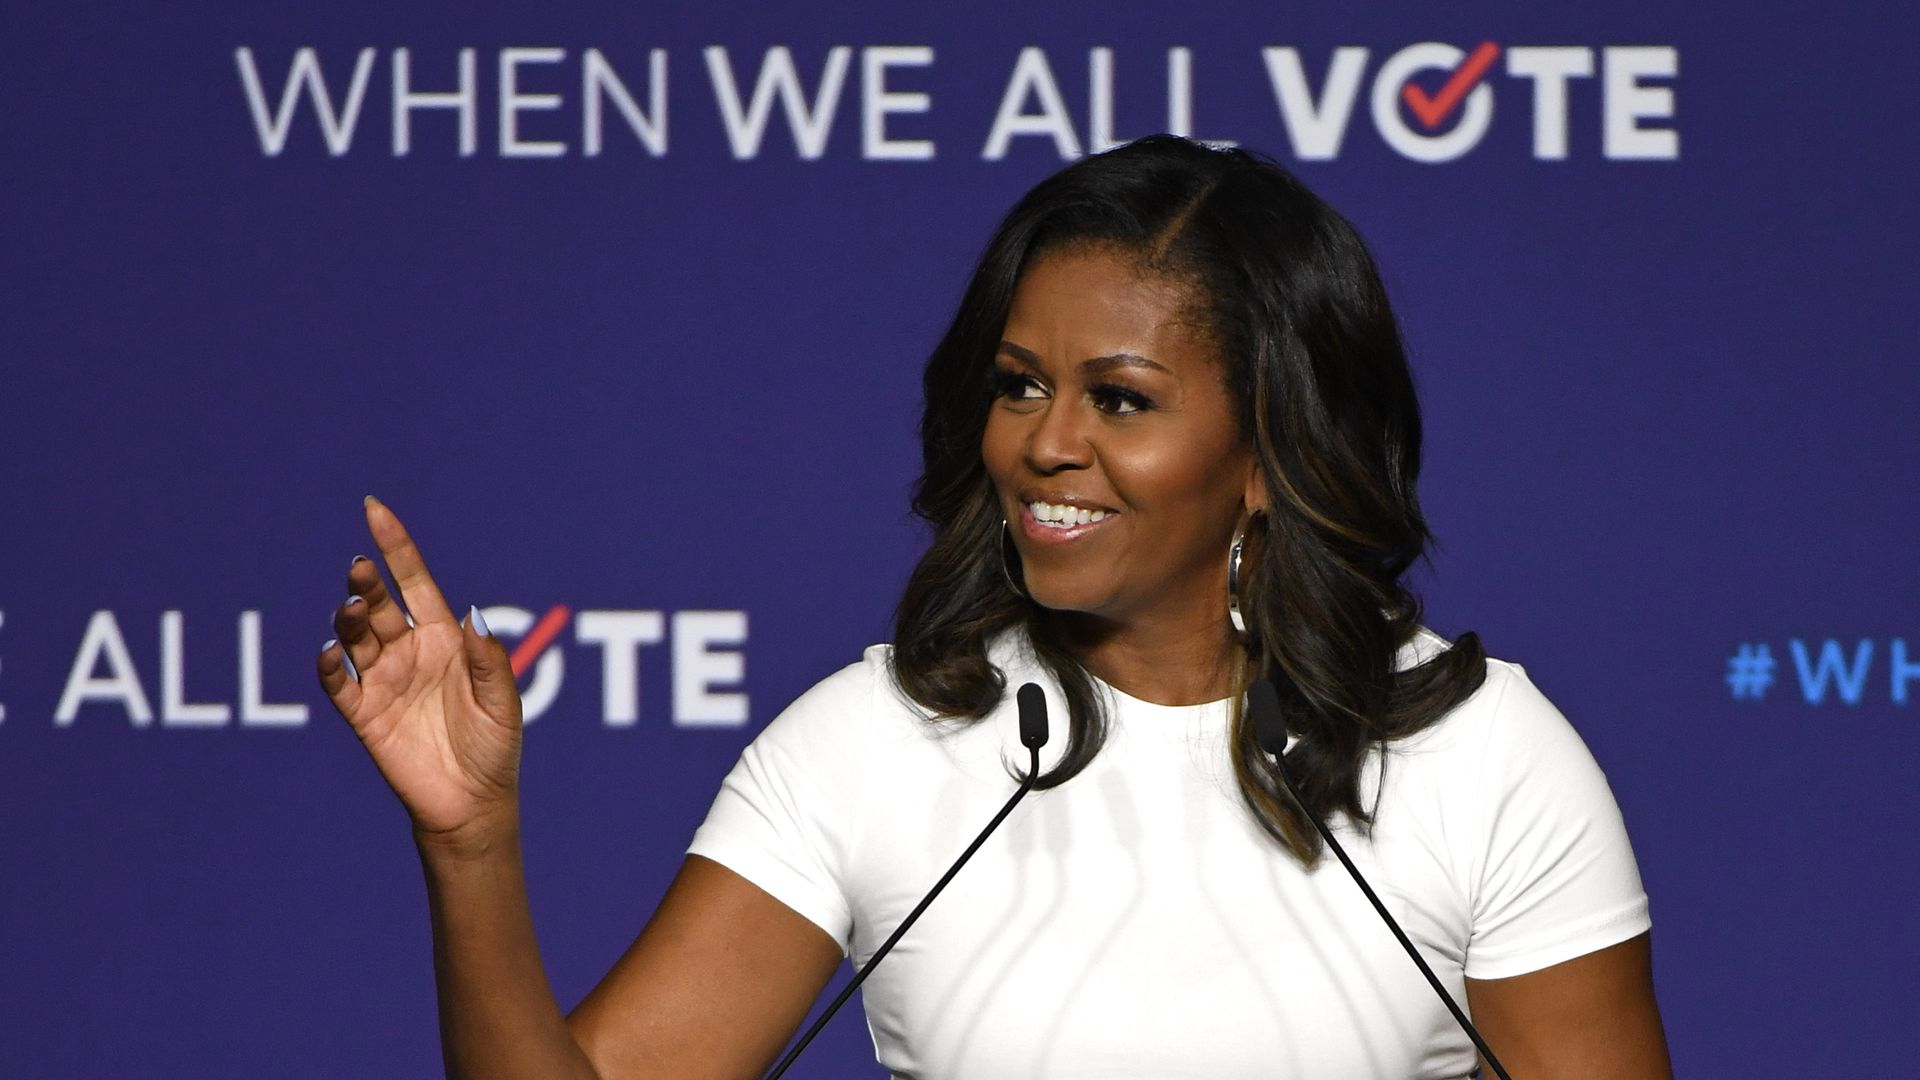 Michelle Obama blasts Trump's behavior toward women in new book